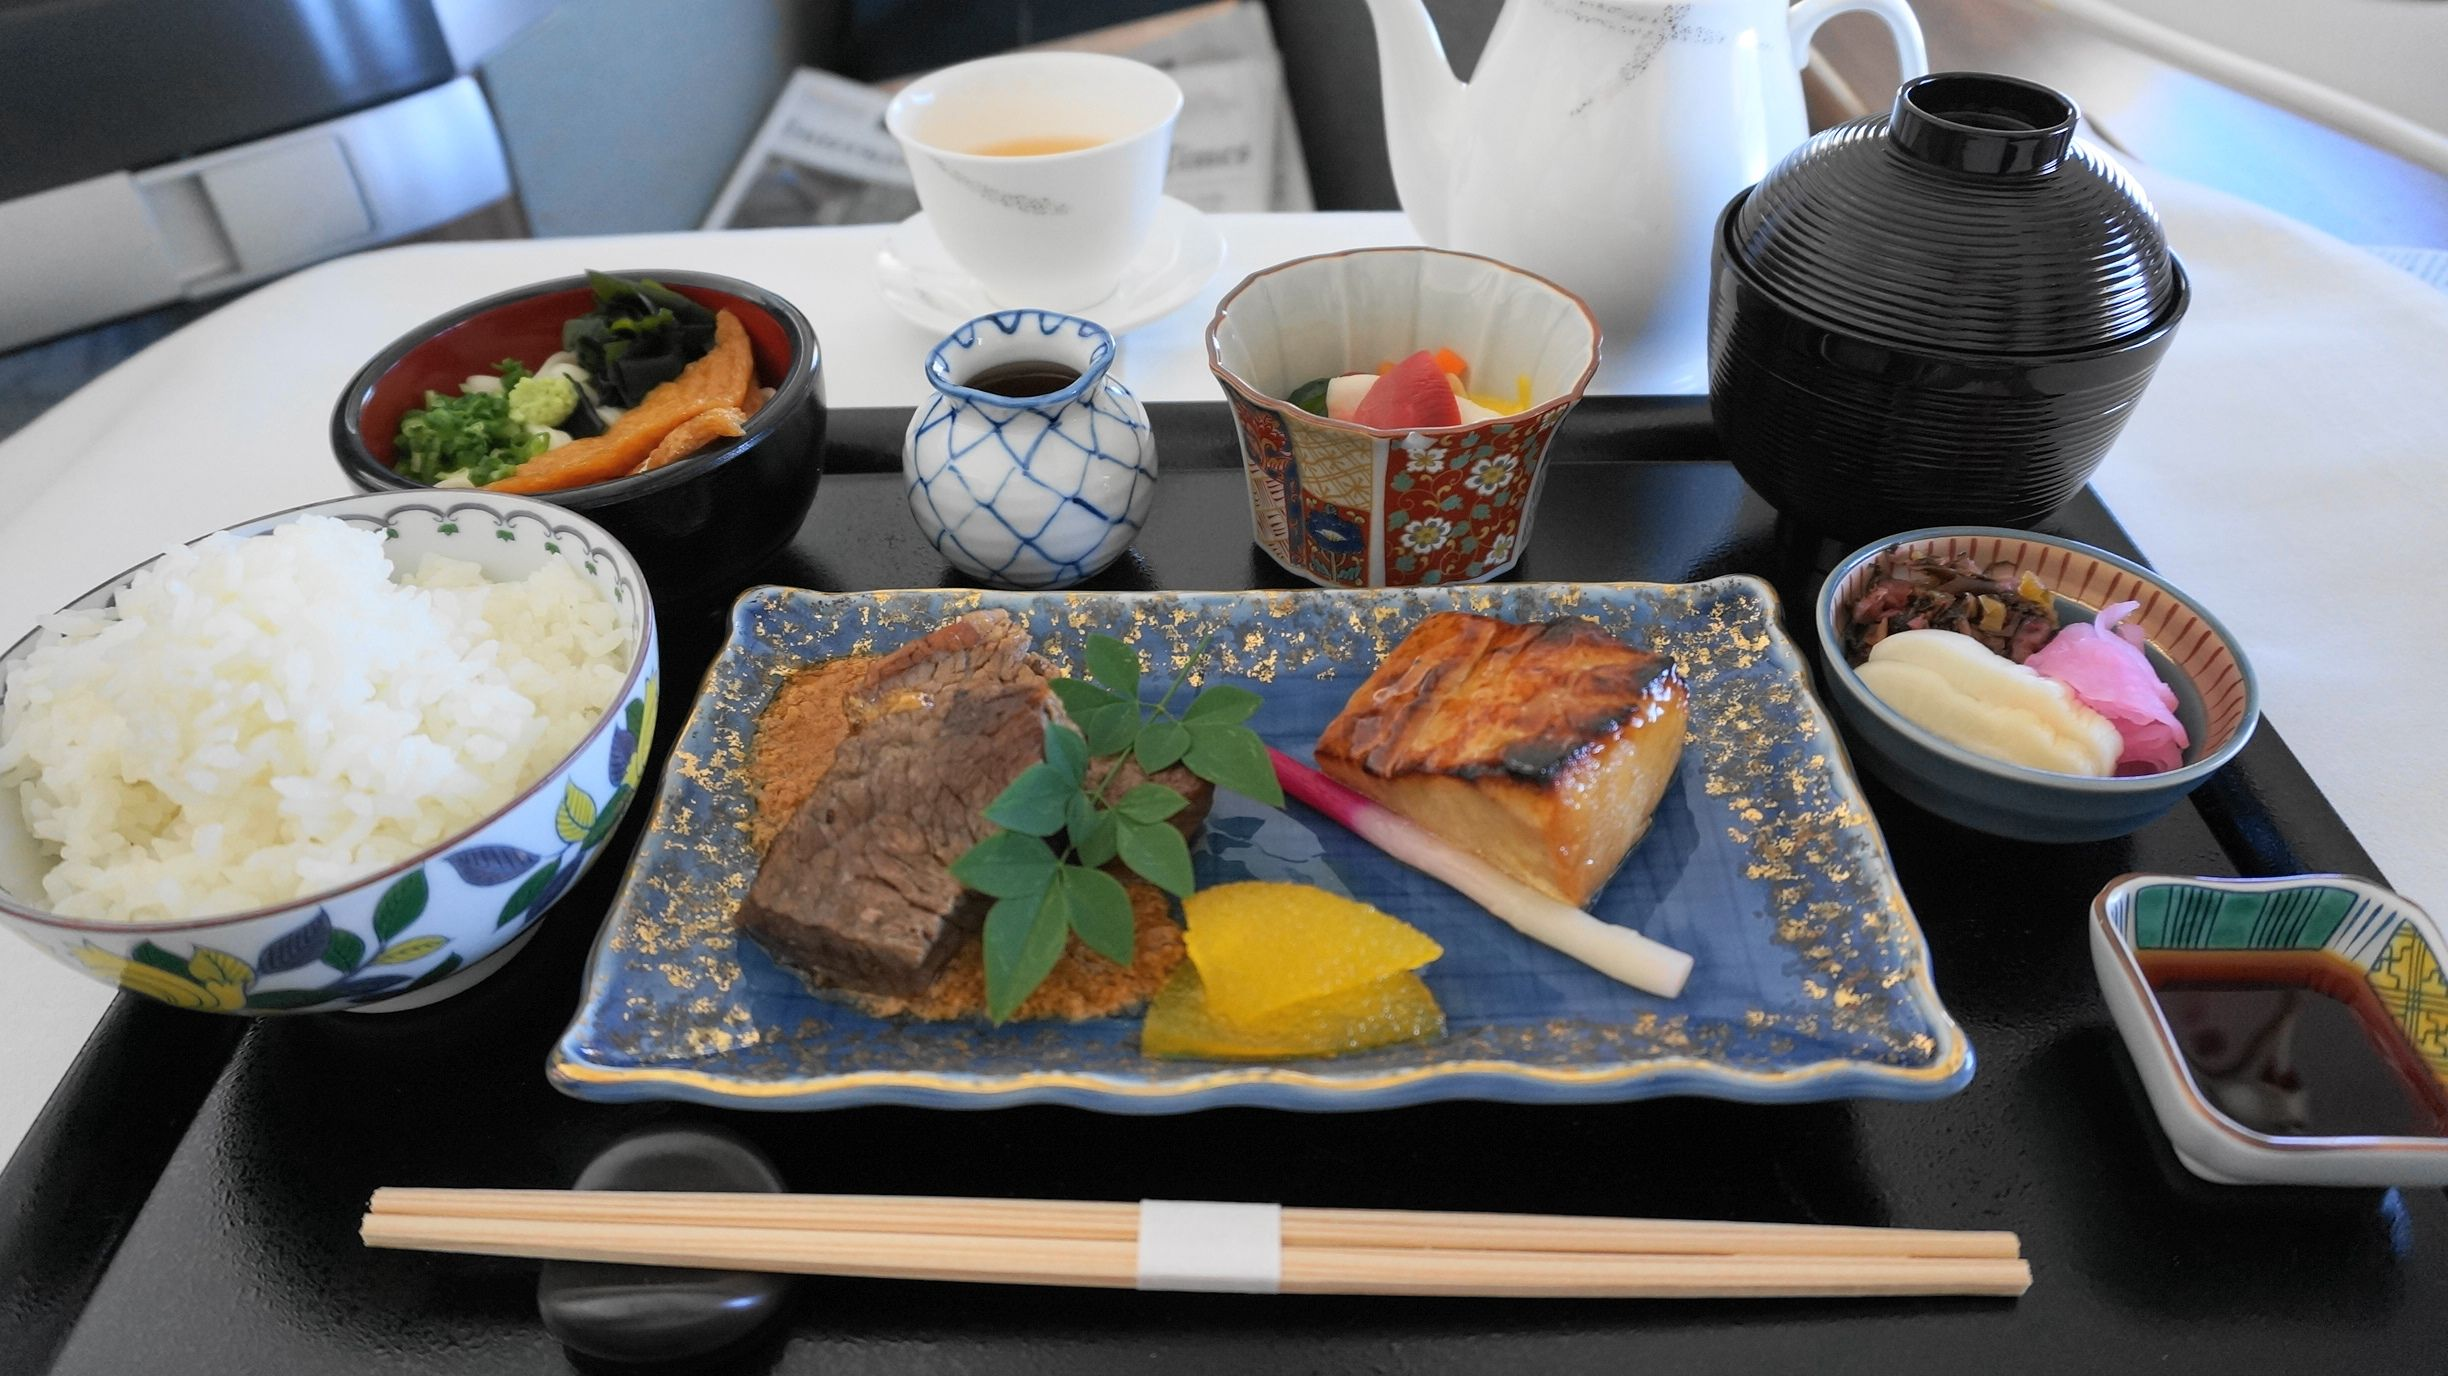 Cathay pacific first class japanese meal hanedahong kong